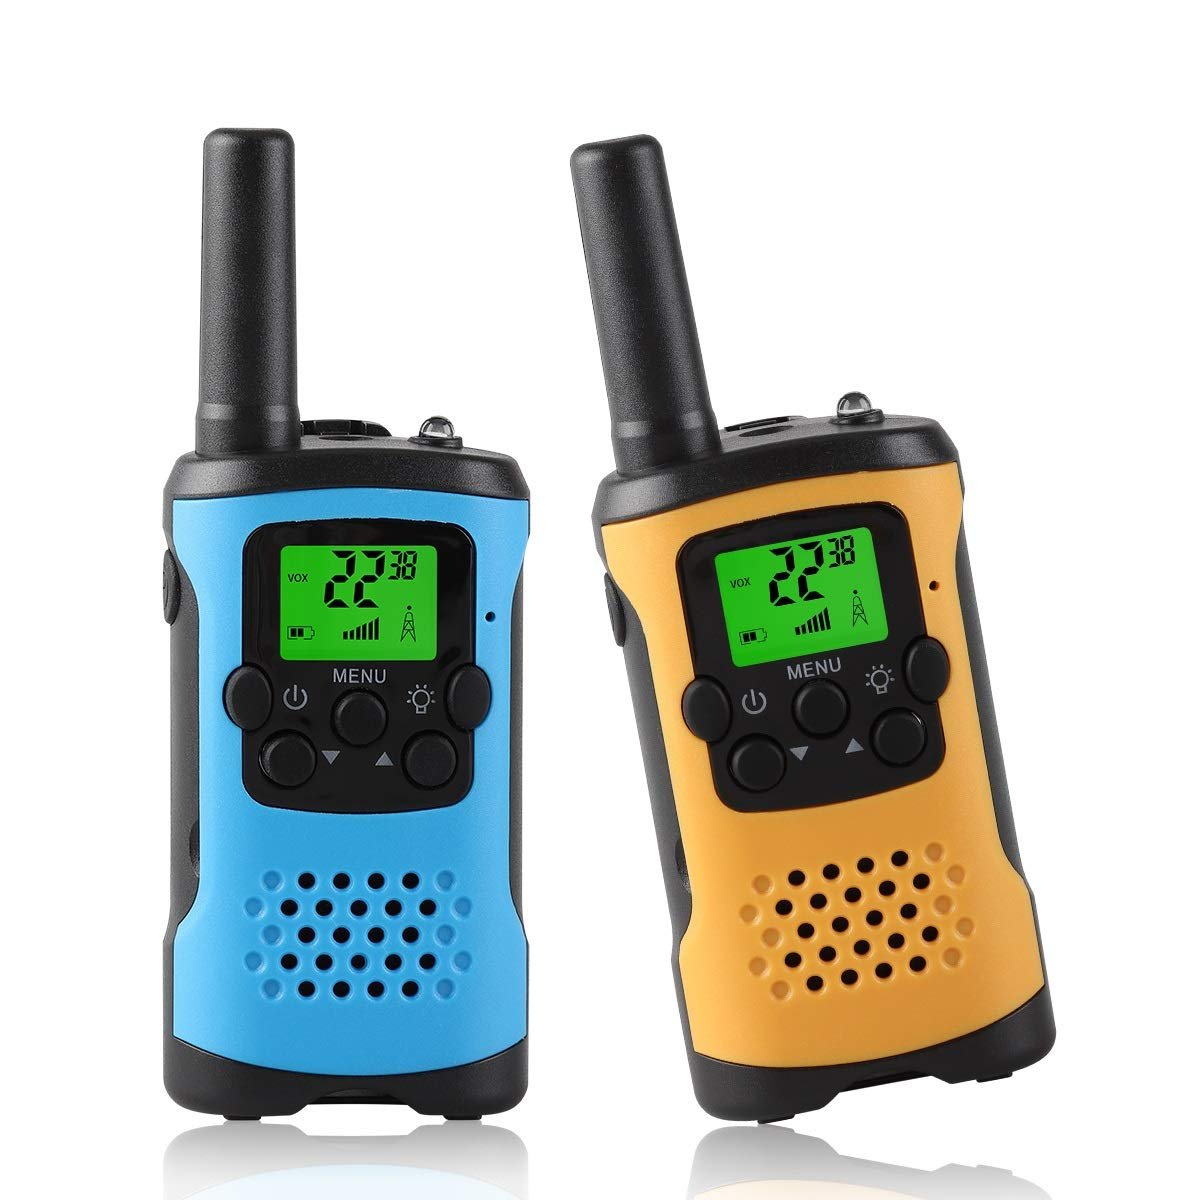 WES TAYIN Upgraded Walkie Talkies for Kids, Kids Two Way Radios Toys with 22 Channels, Kids Walkie Talkies with VOX Hands Free and LED Flashlight ,Best Birthday Holiday Toys for Kids